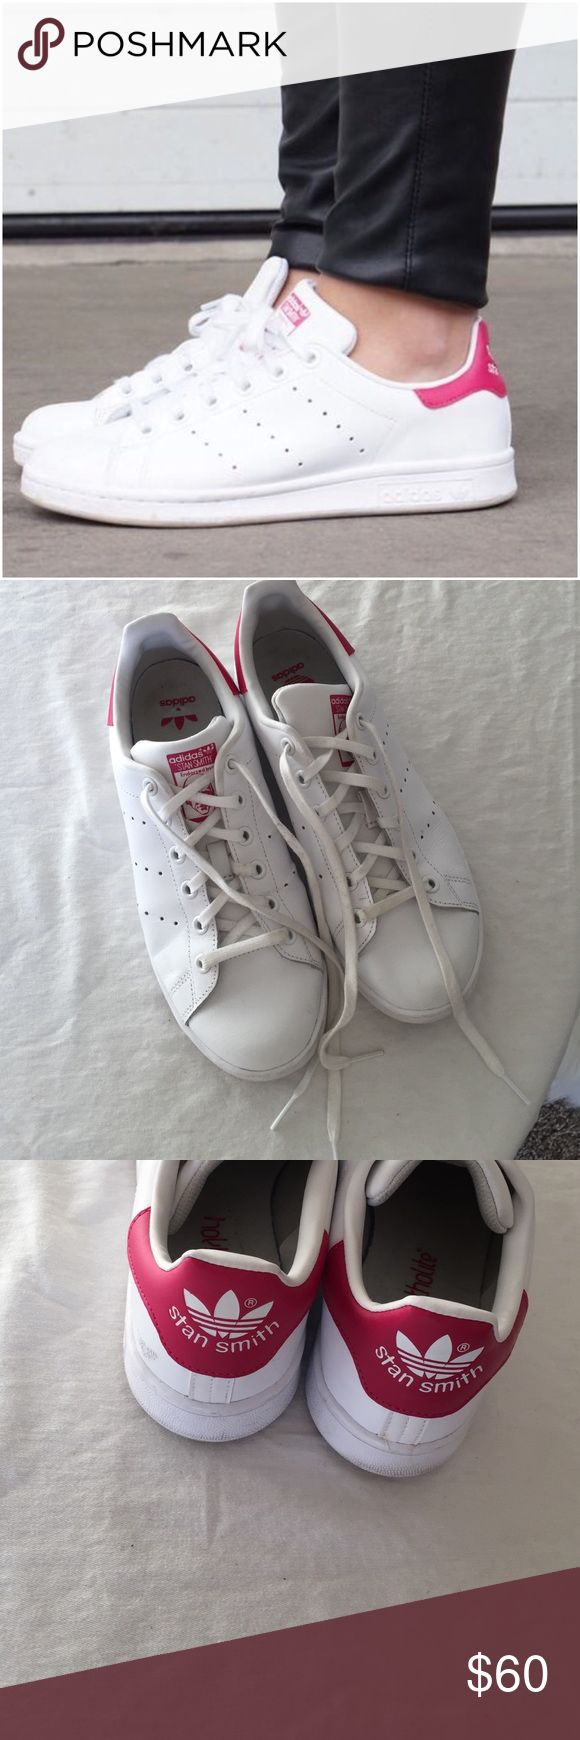 adidas, Stan smith, hot pink, size 6.5 Hard to find.. adidas stan smith with bold pink backs, these are priced lower then womens because they are  a kids shoe. they will fit a womens size 6.5, great preowned condition. no trades.  Removable insole. Lace-up style. Leather and synthetic upper/textile and synthetic lining/rubber sole. Adidas Shoes Sneakers